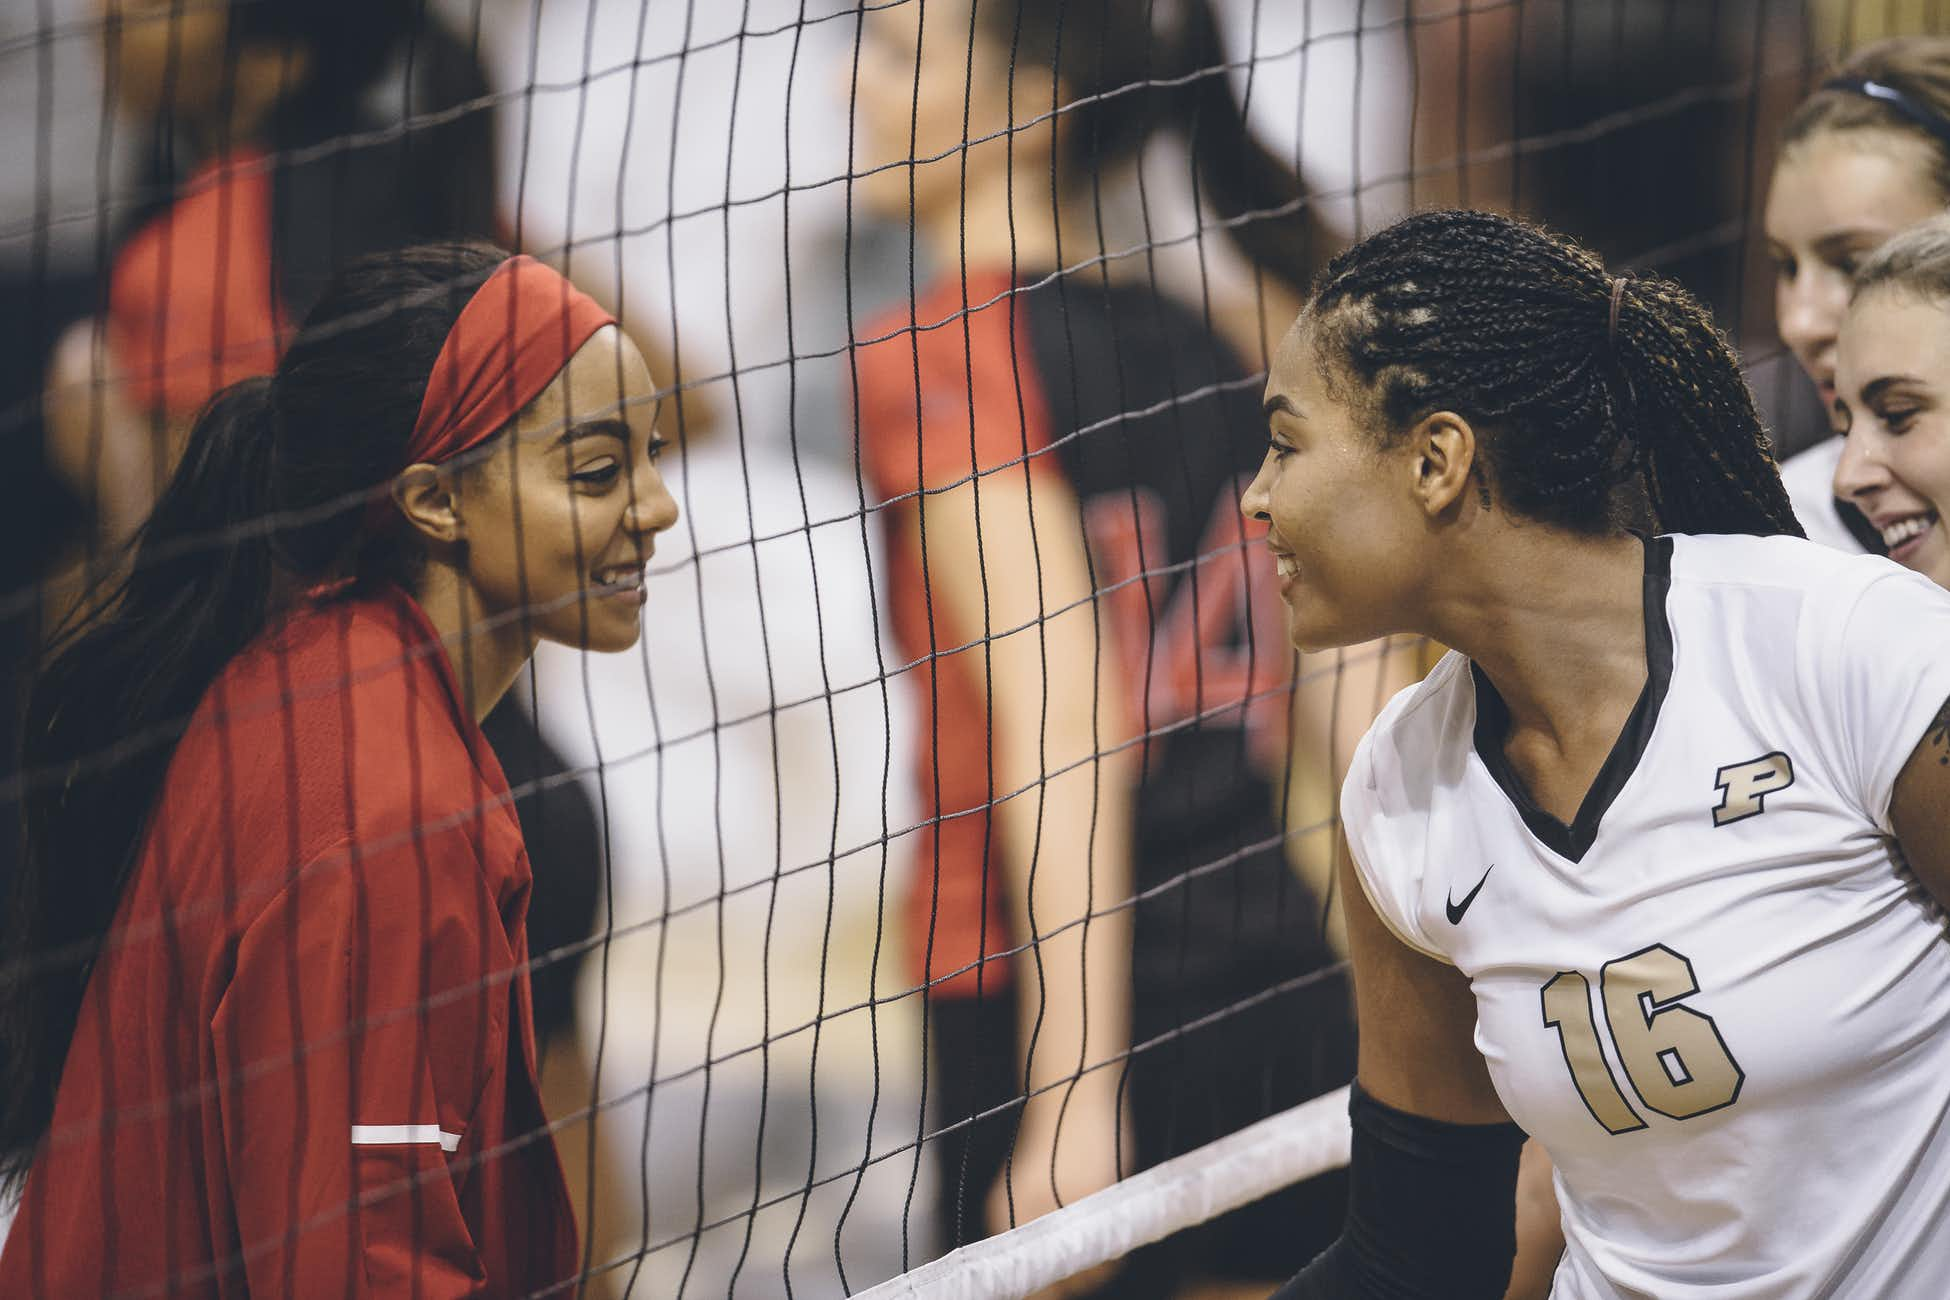 Atkinson and (I think) MB Jasmine Bennett in the pre-match handshake line - Bennett held her own, but Atkinson's Boilers won the match